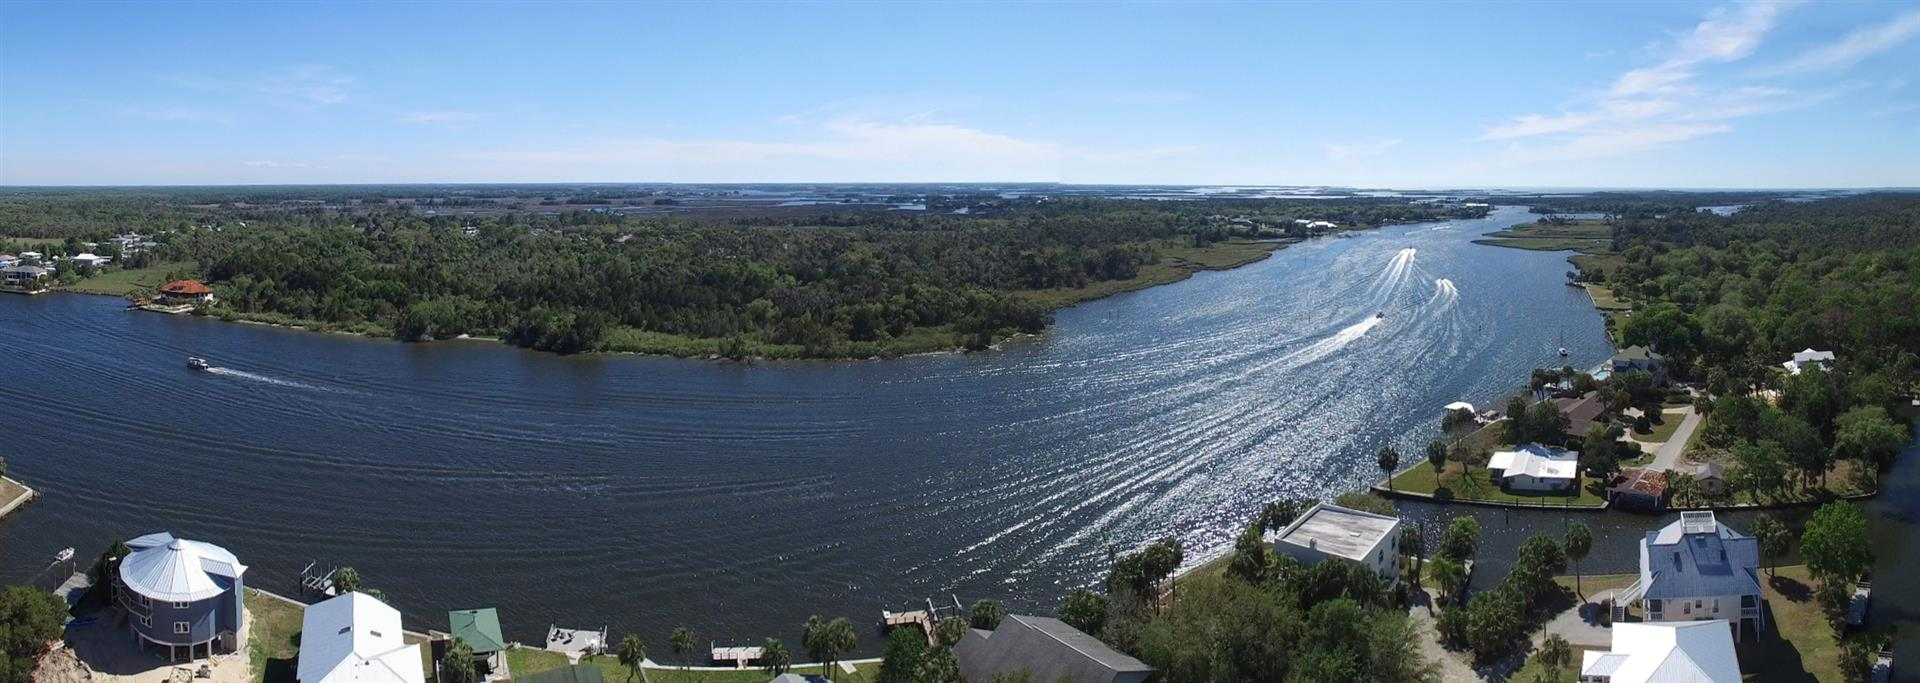 The Crystal River at Woodland Estates, aerial panorama shot with boats passing by